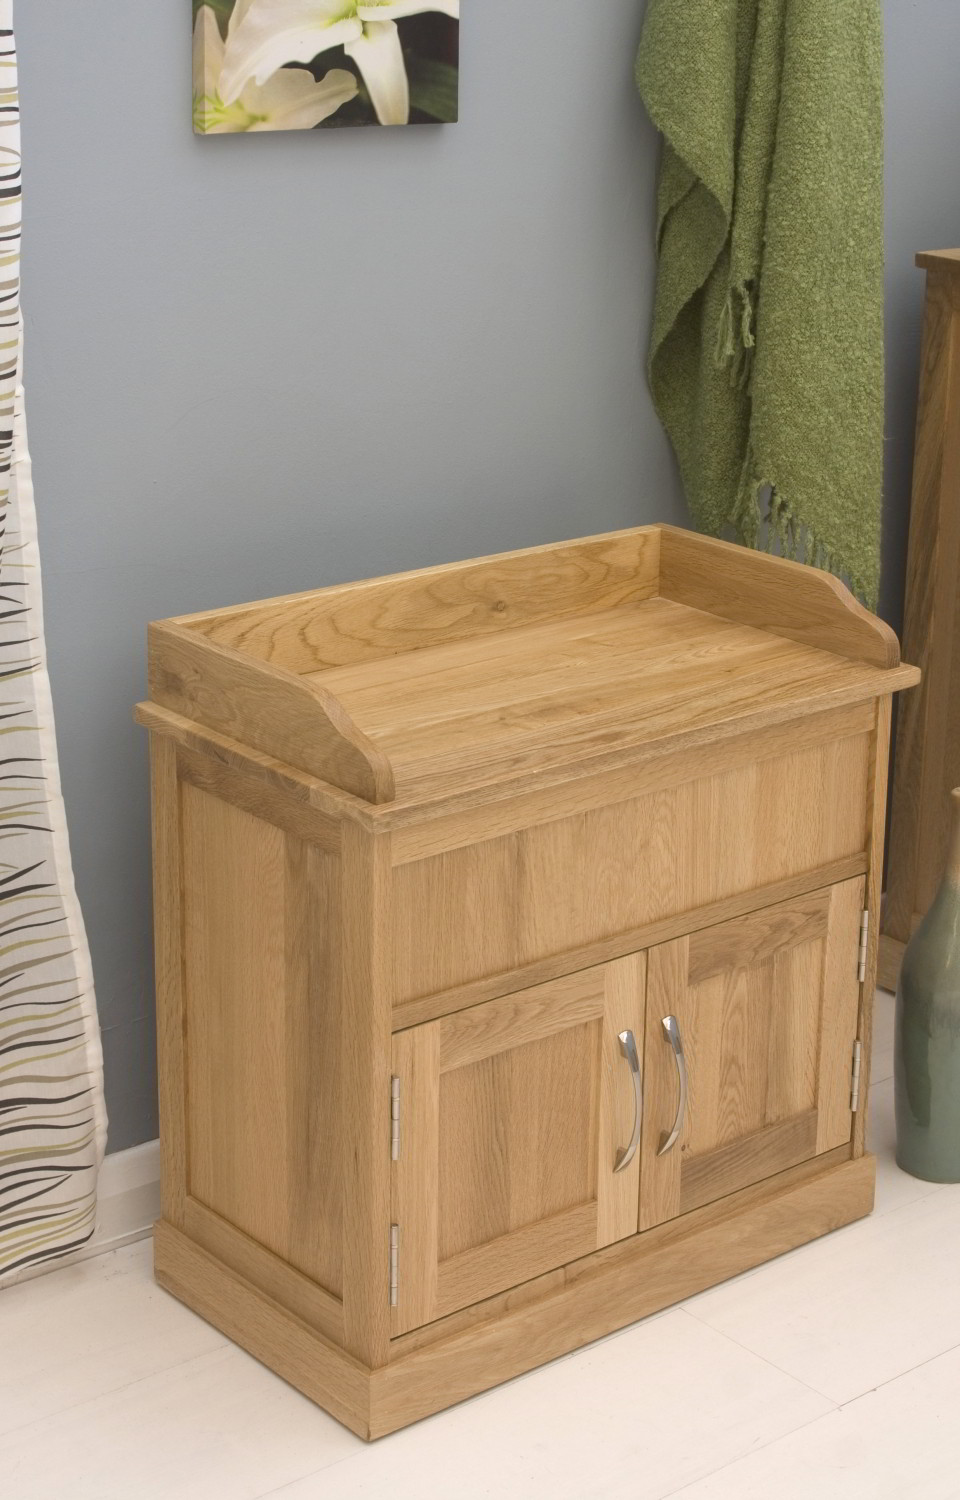 Conran Solid Oak Furniture Hallway Shoe Storage Bench